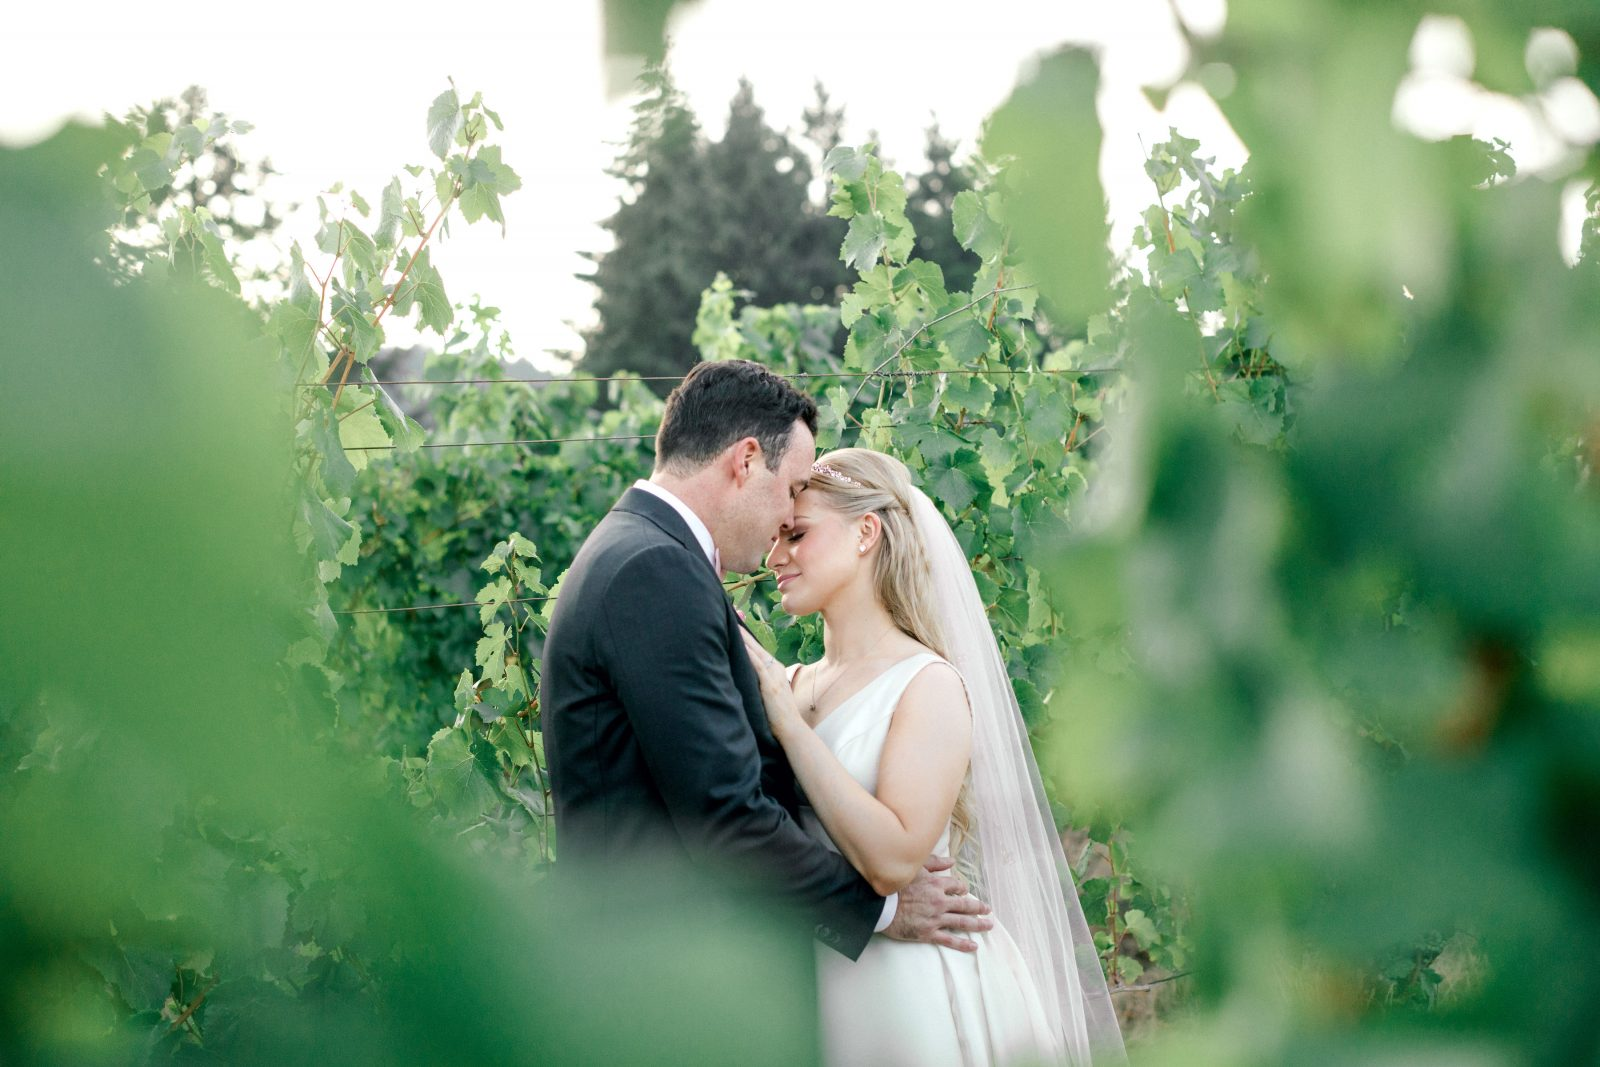 18-8-John-Lauren-Beacon-Hill-Vineyard-Winery-Wedding-Portland-Oregon-Destination-Photographer-Zeeqk-600 (1)